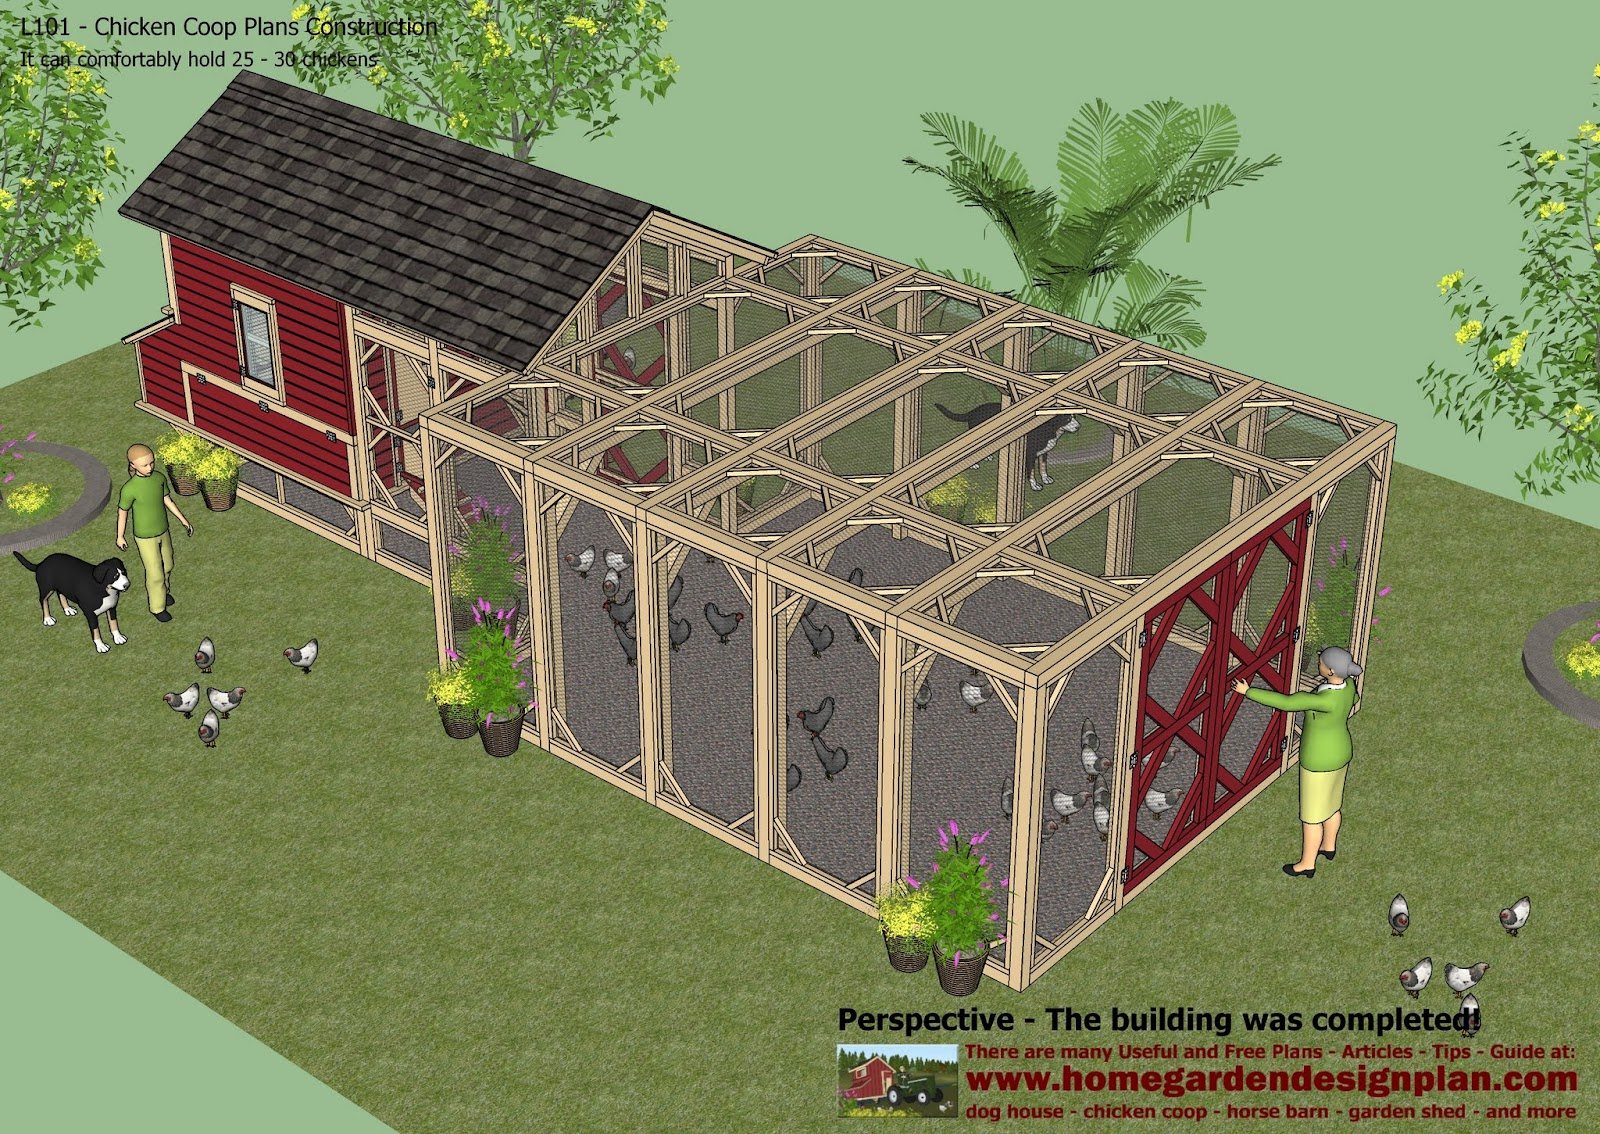 Home garden plans home garden plans l101 chicken coop for Home and garden planner